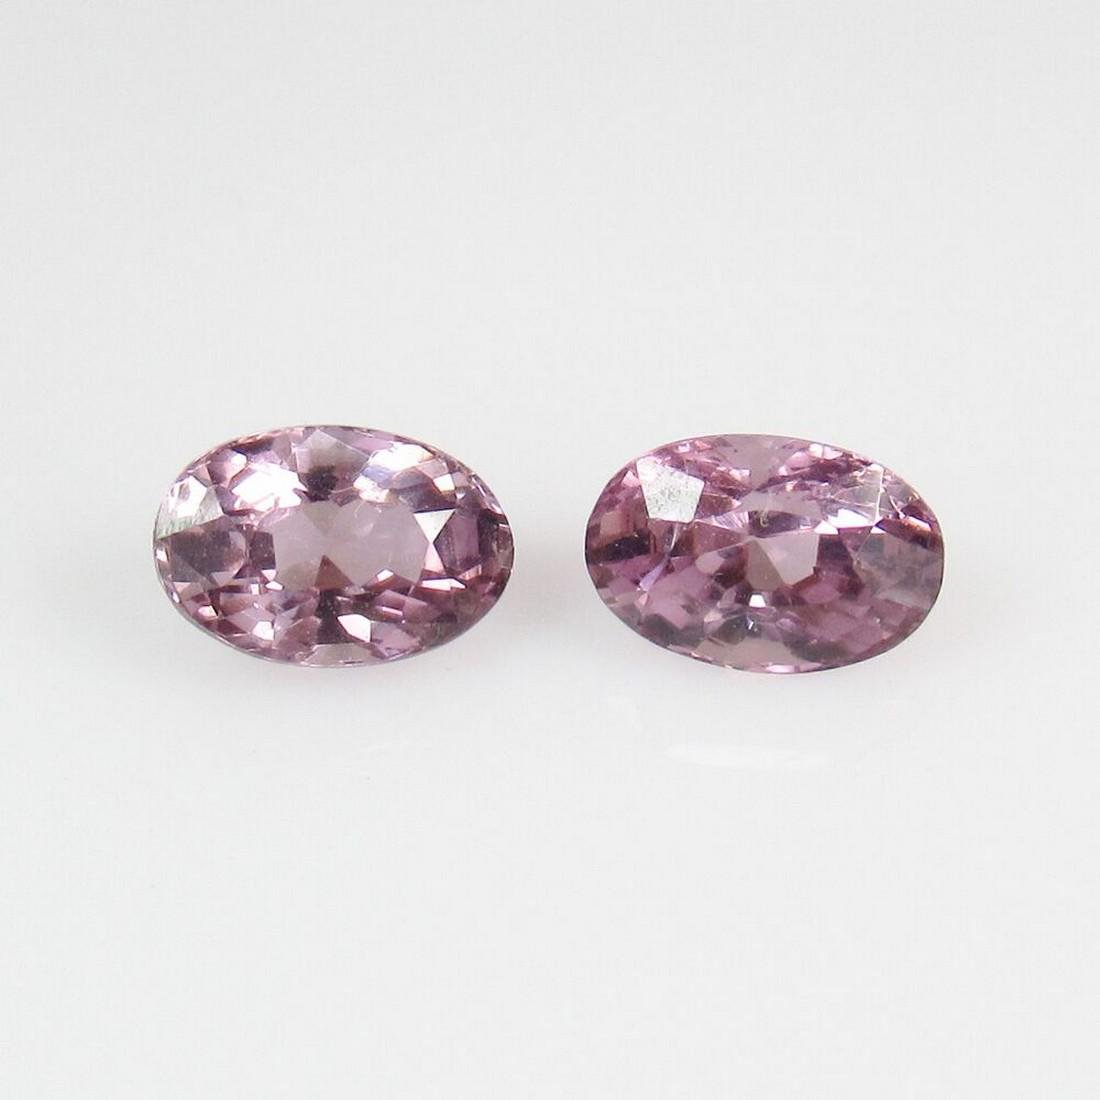 1.23 Ct Natural Pink Sapphire 6X4 mm Oval Pair